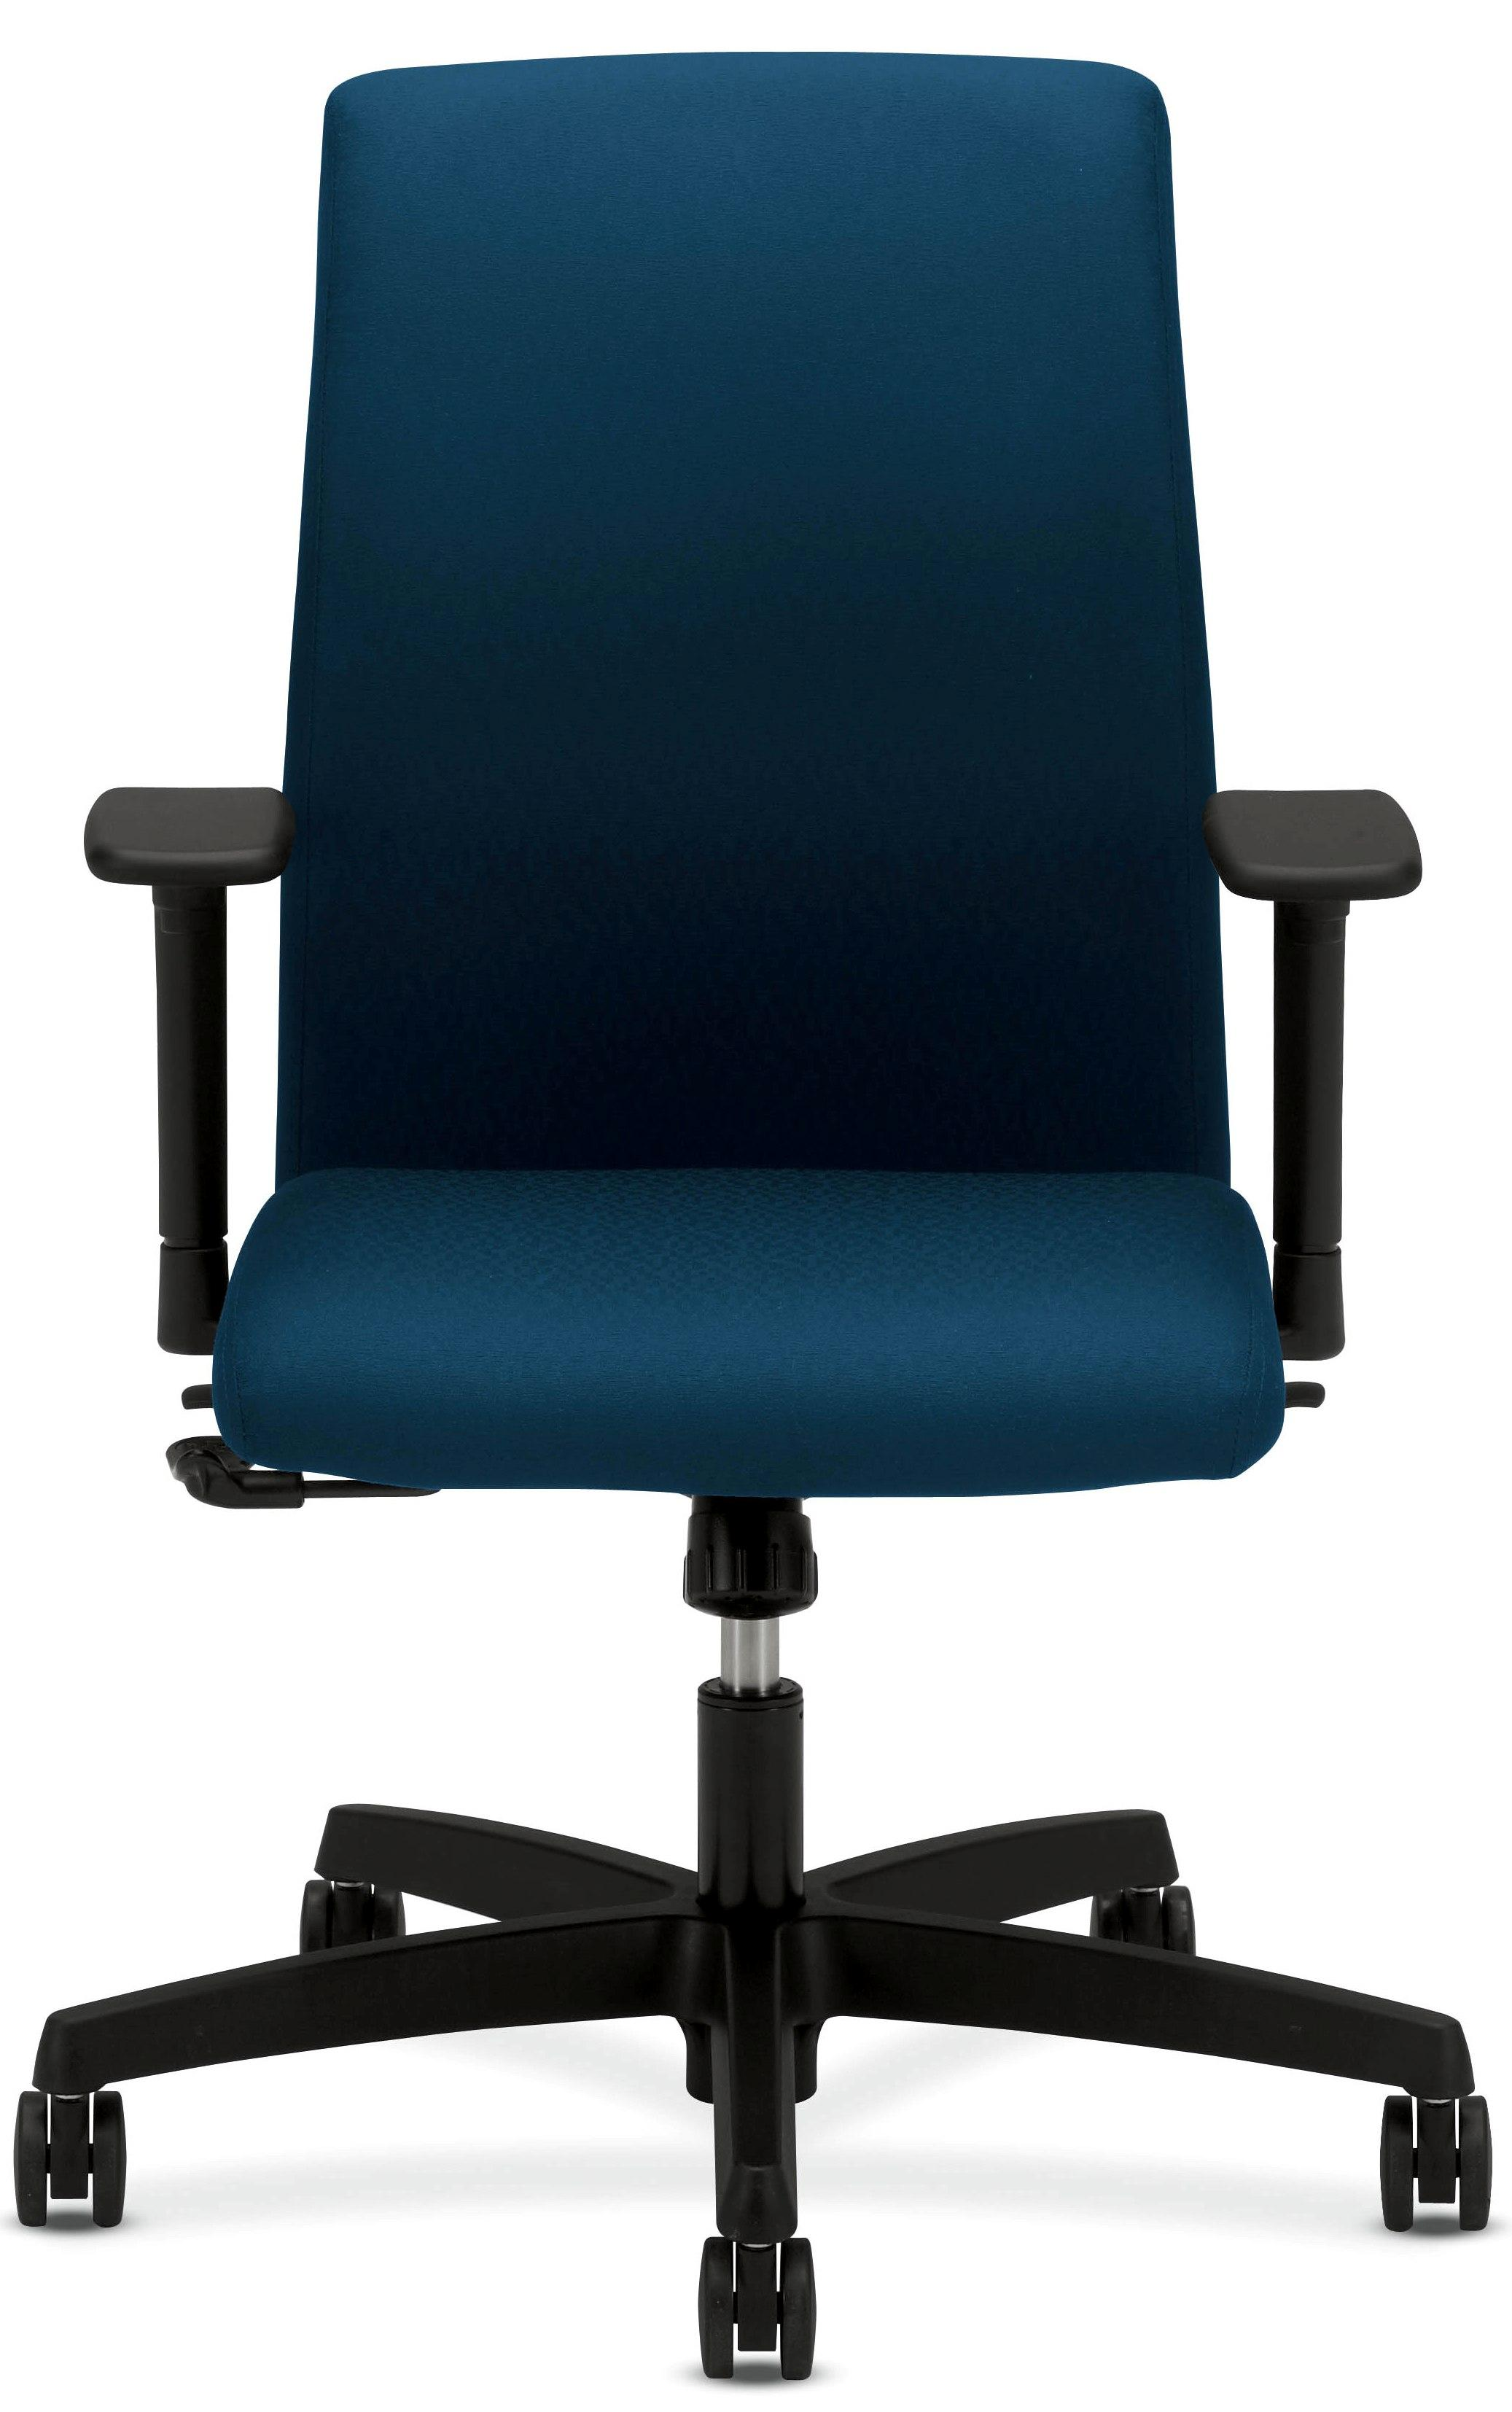 hon office furniture ignition office chair desk chair computer